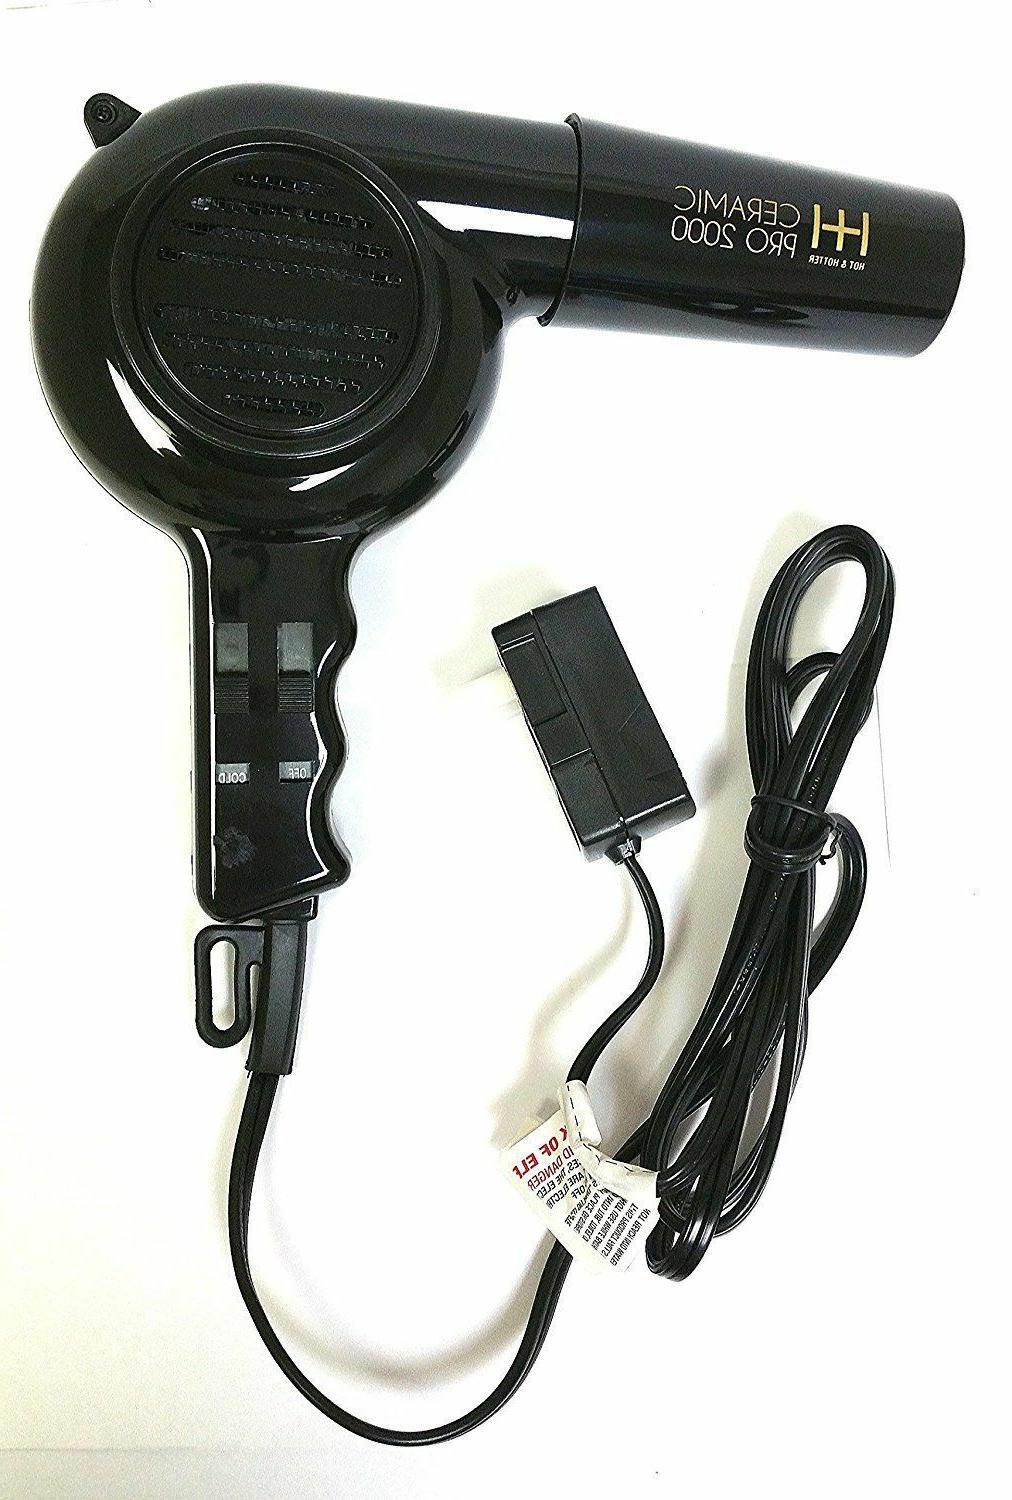 BLOW DRYER CERAMIC PRO 2000 HOTTER 2 ATTACHMENTS,